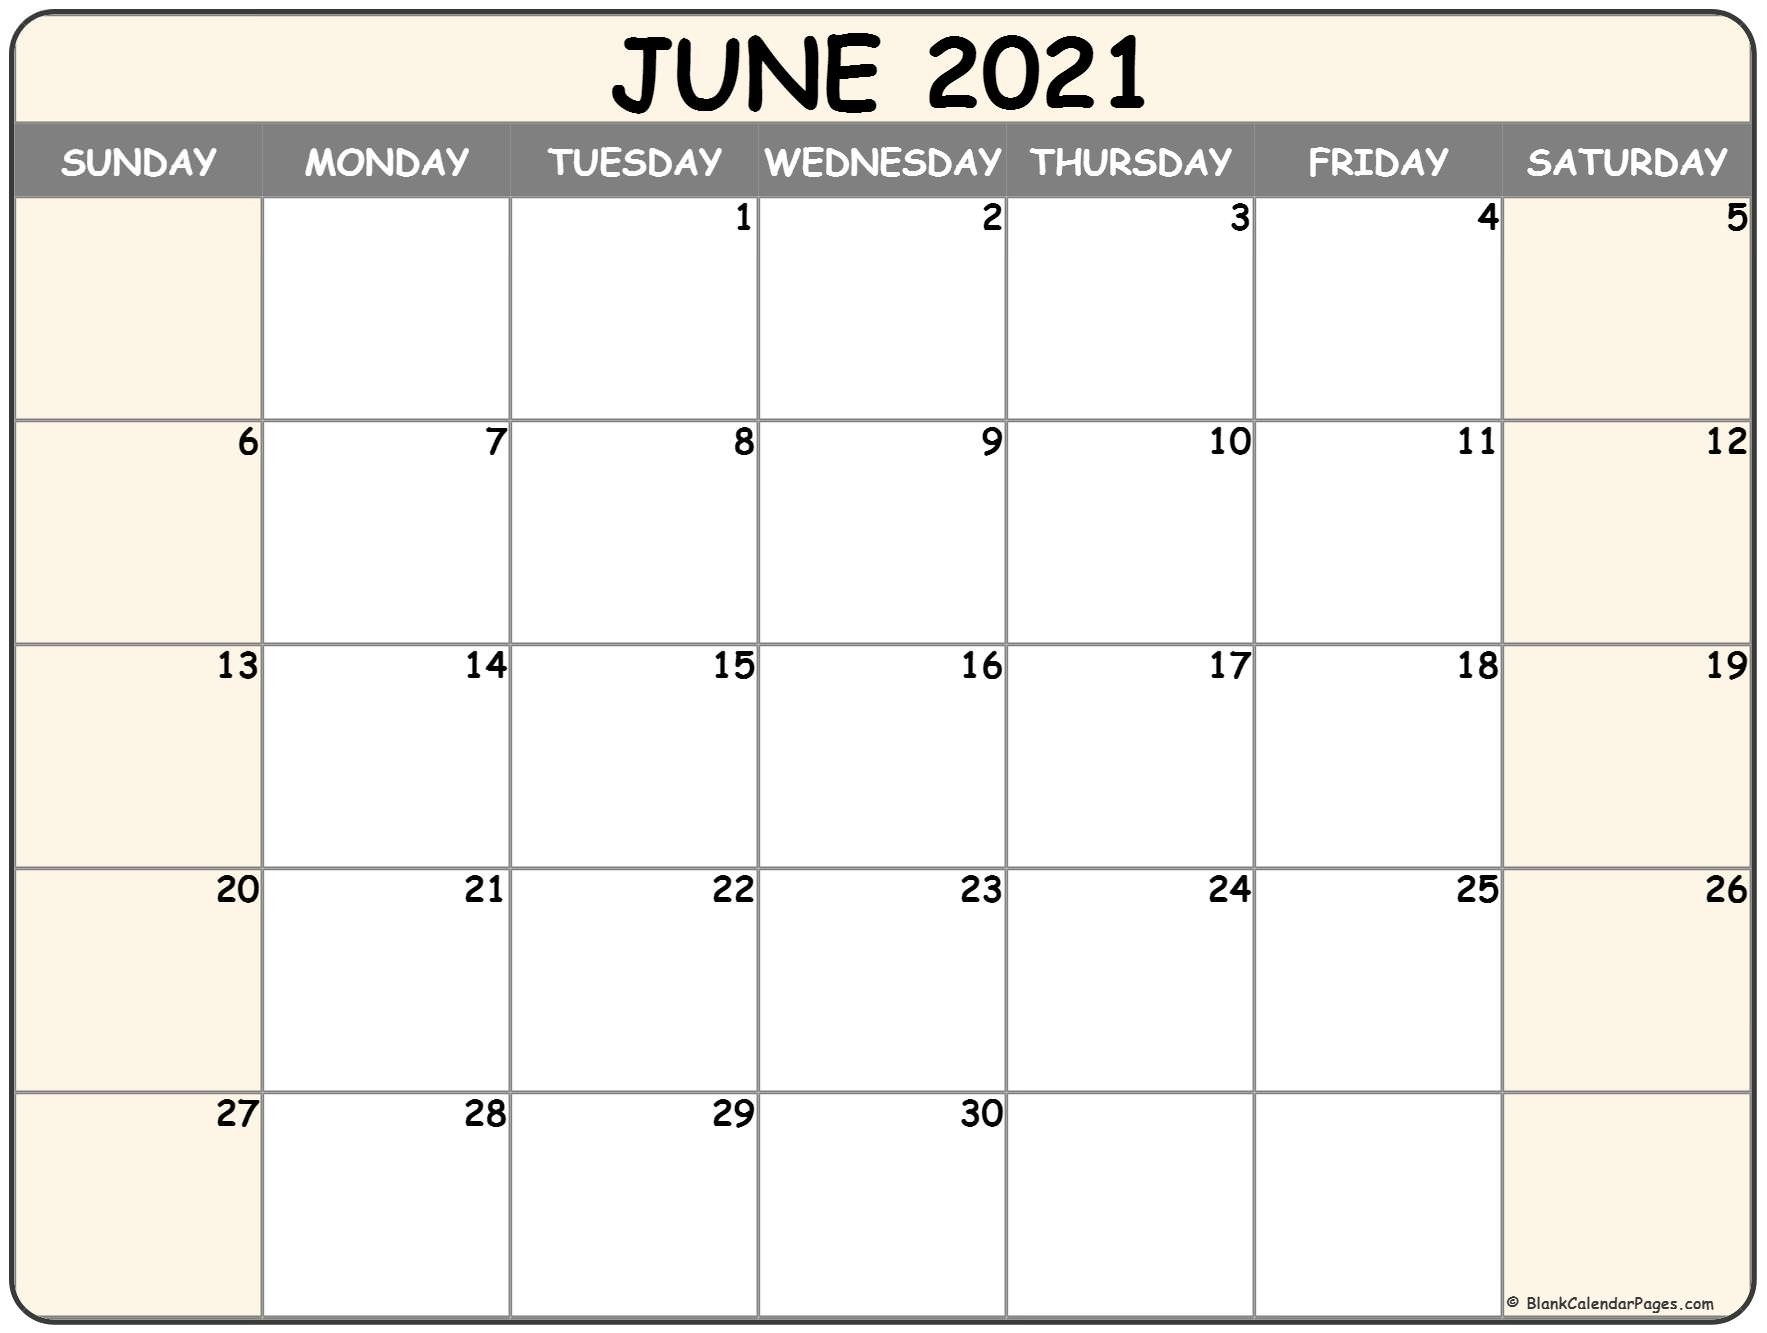 June 2021 Calendar | Free Printable Monthly Calendars-Sepetember 2021 Calendar With Big Numbers